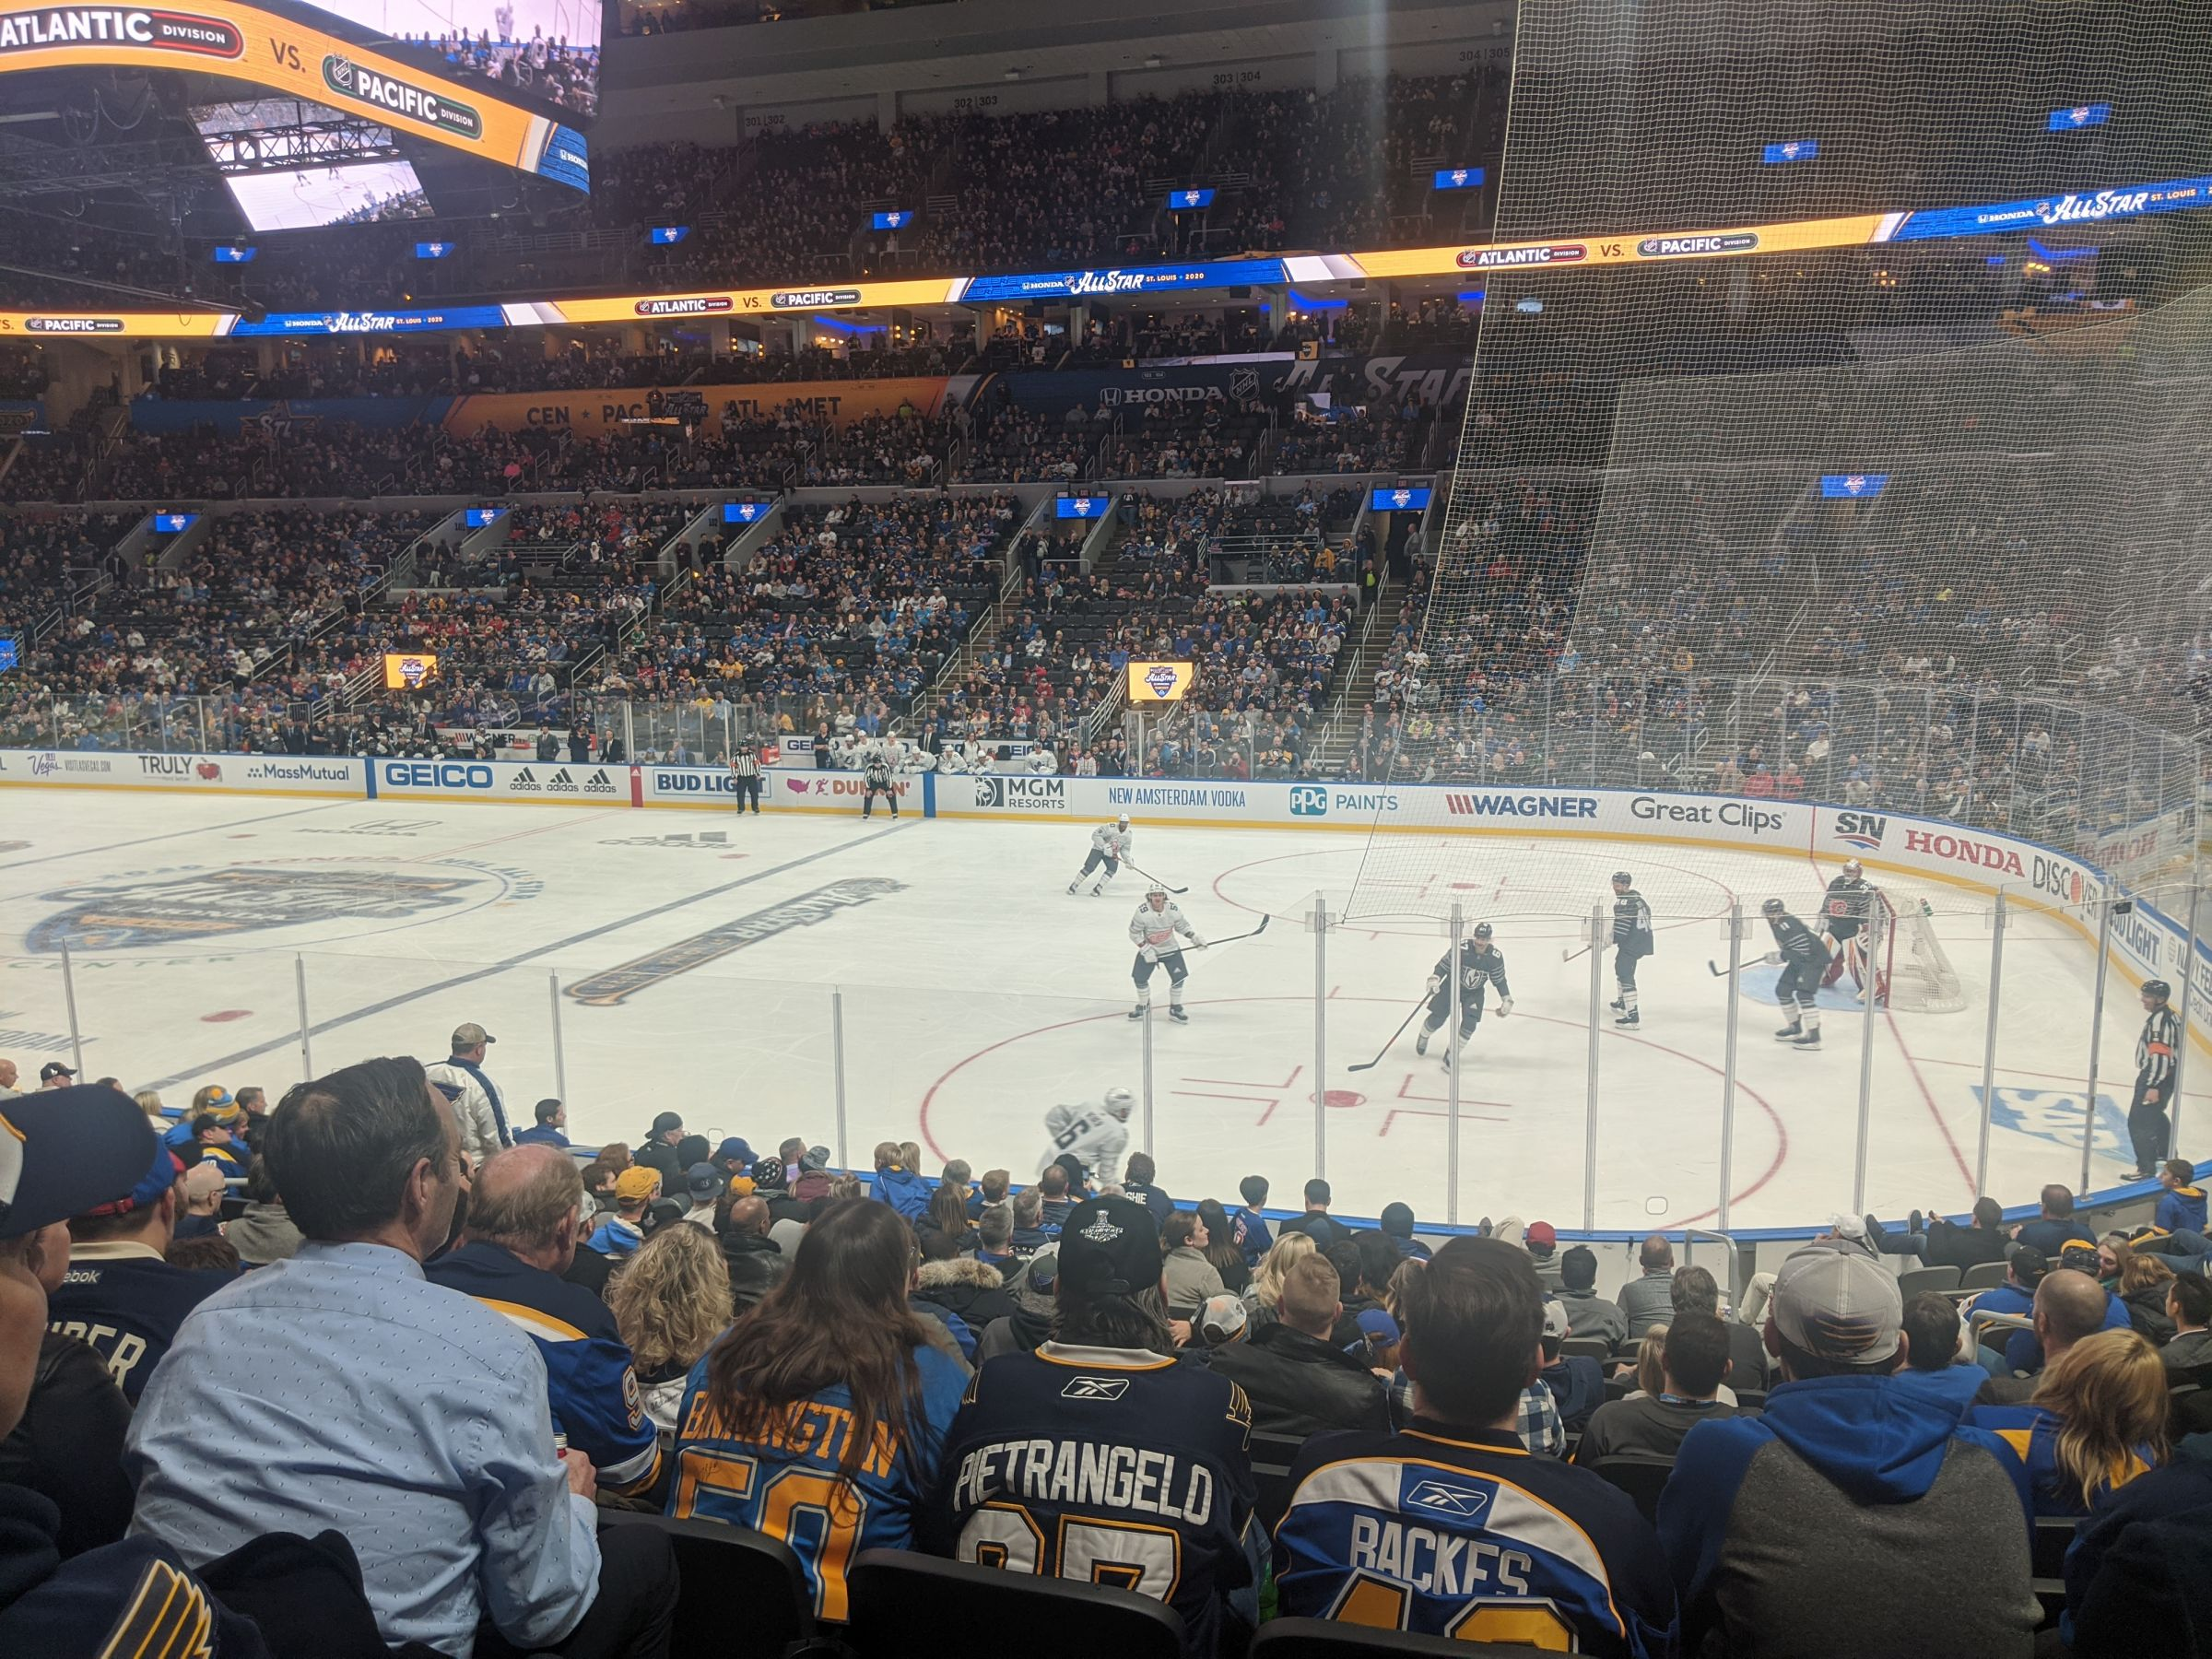 Section 114 seat view